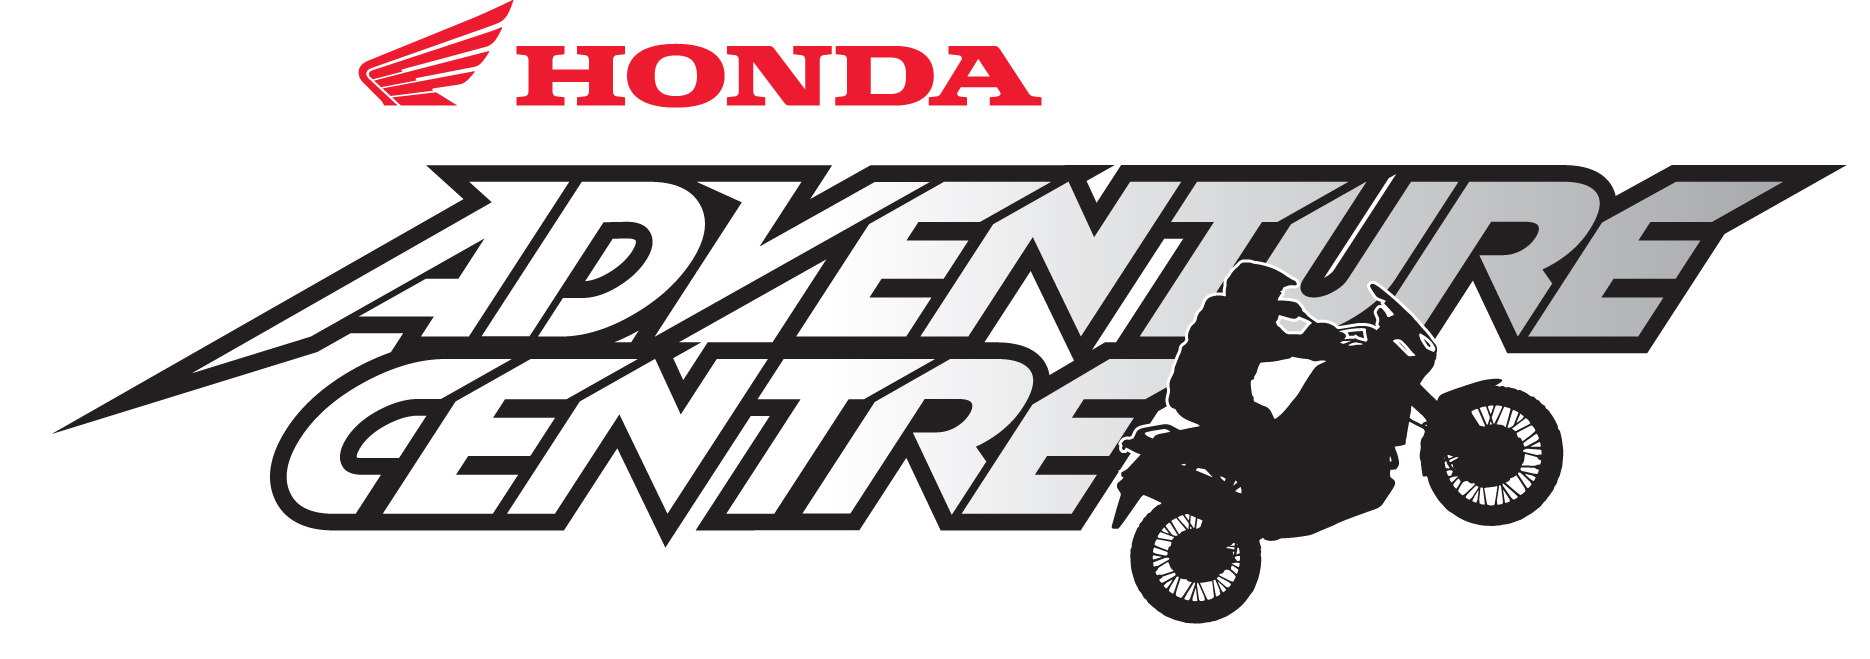 All-new Honda Adventure Centre to open in March